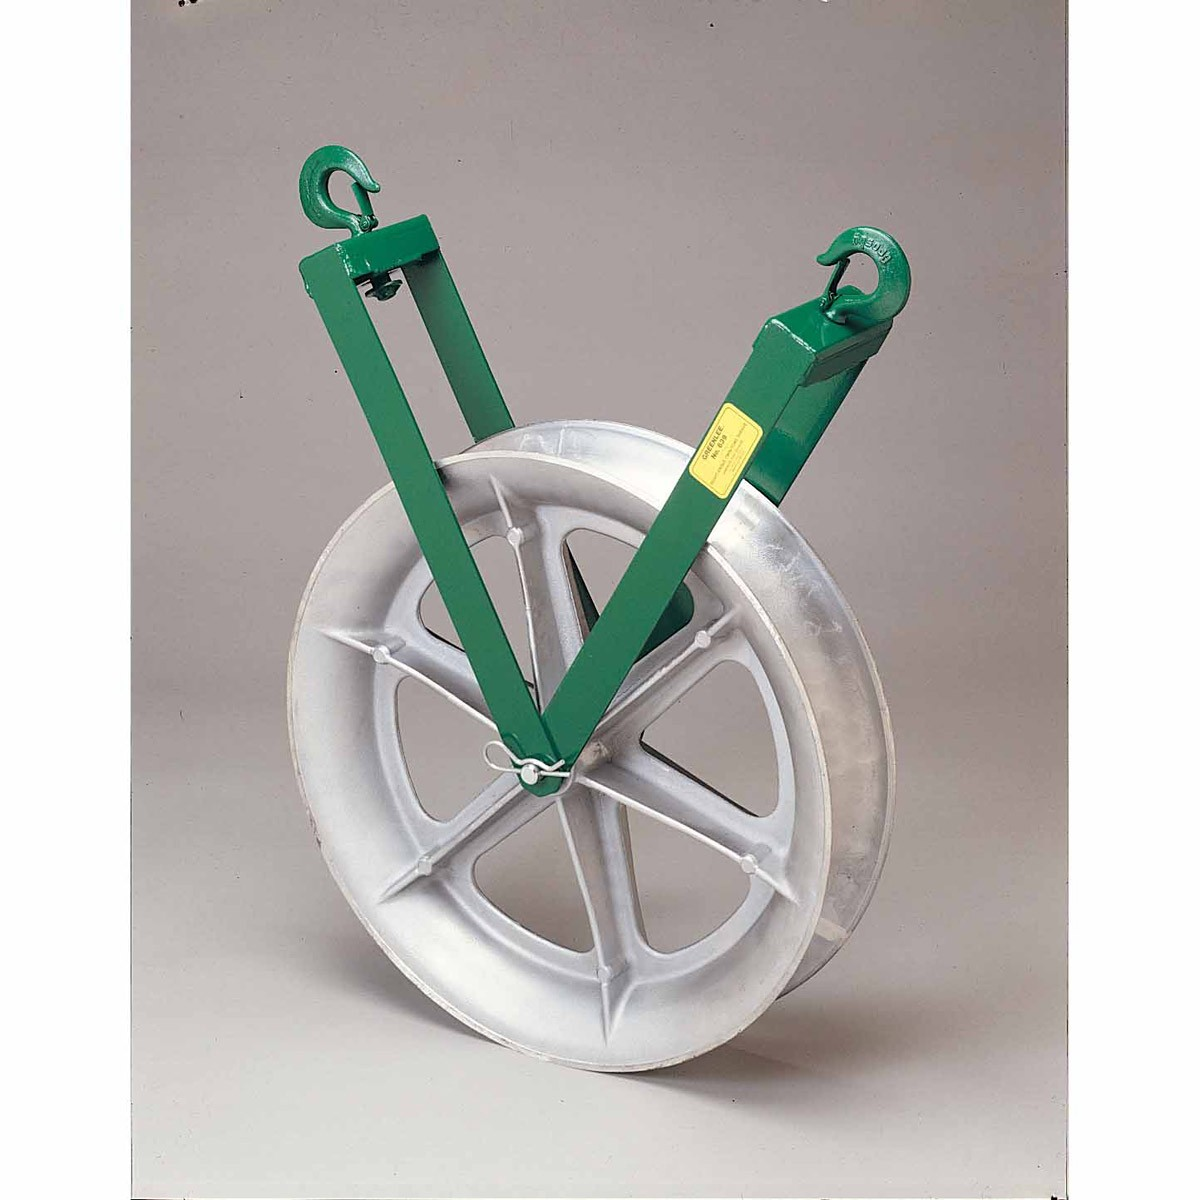 www.toolup.com/product-images/Greenlee-639_21.jpg